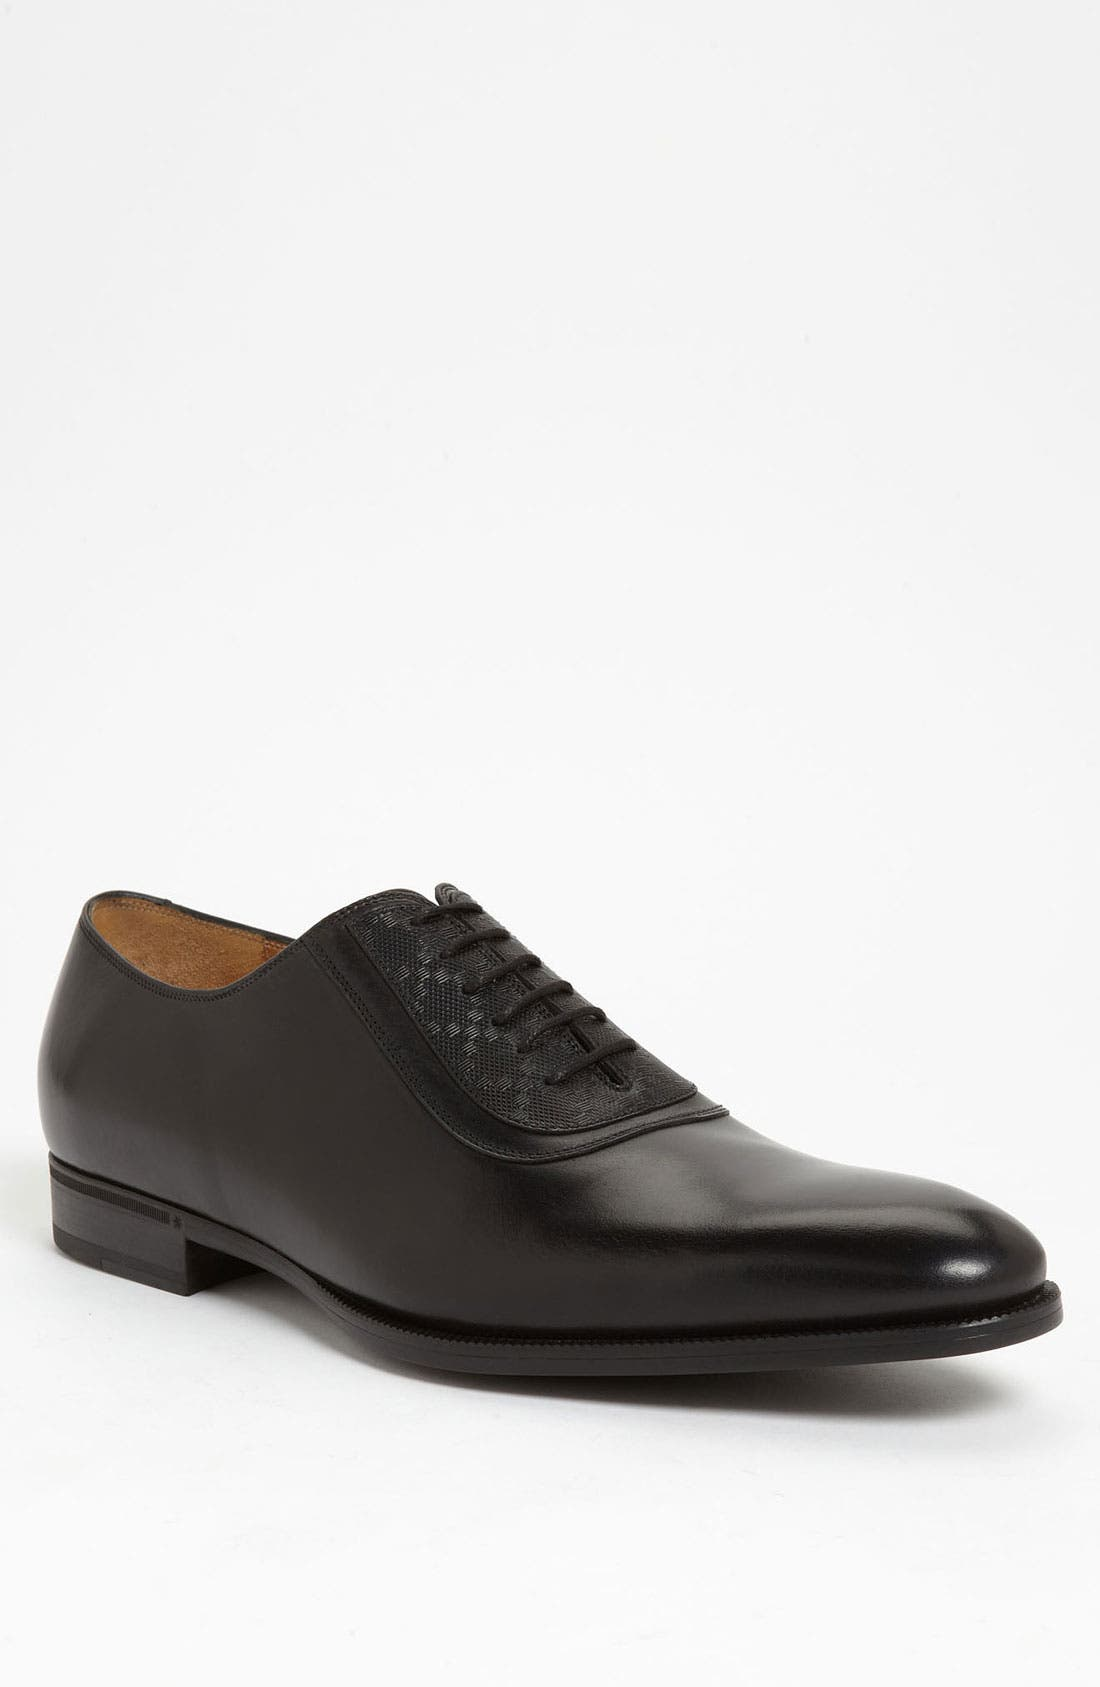 Alternate Image 1 Selected - Gucci 'Noort' Plain Toe Oxford